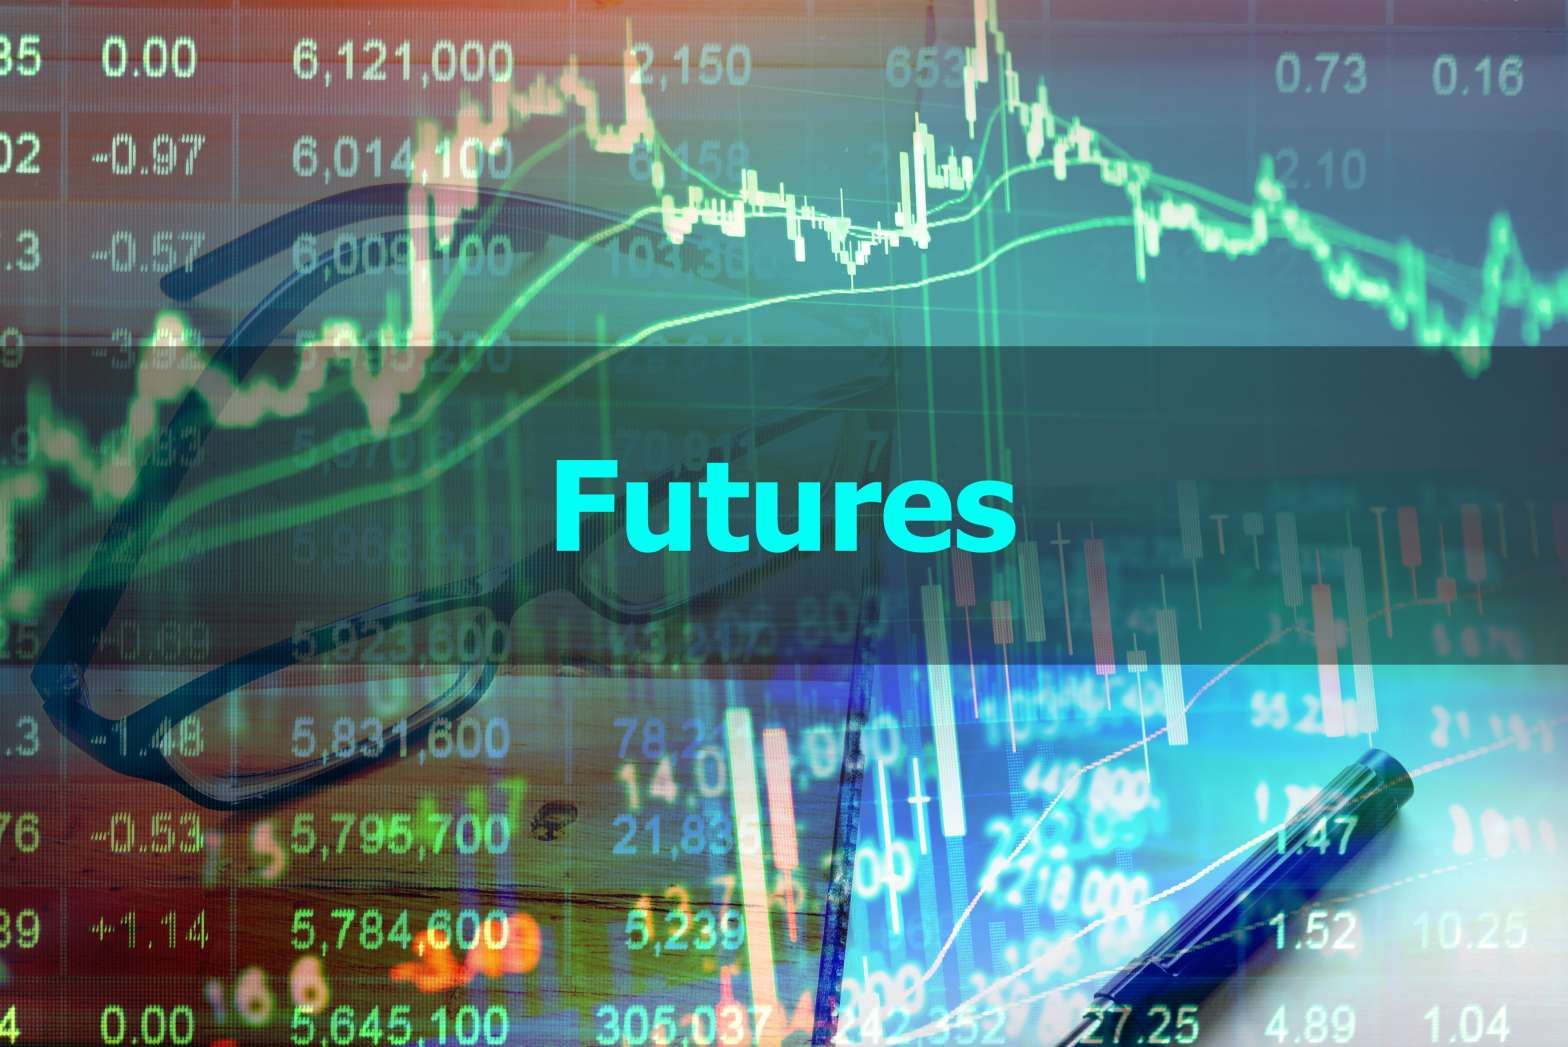 what is a future and why do we invest in them?